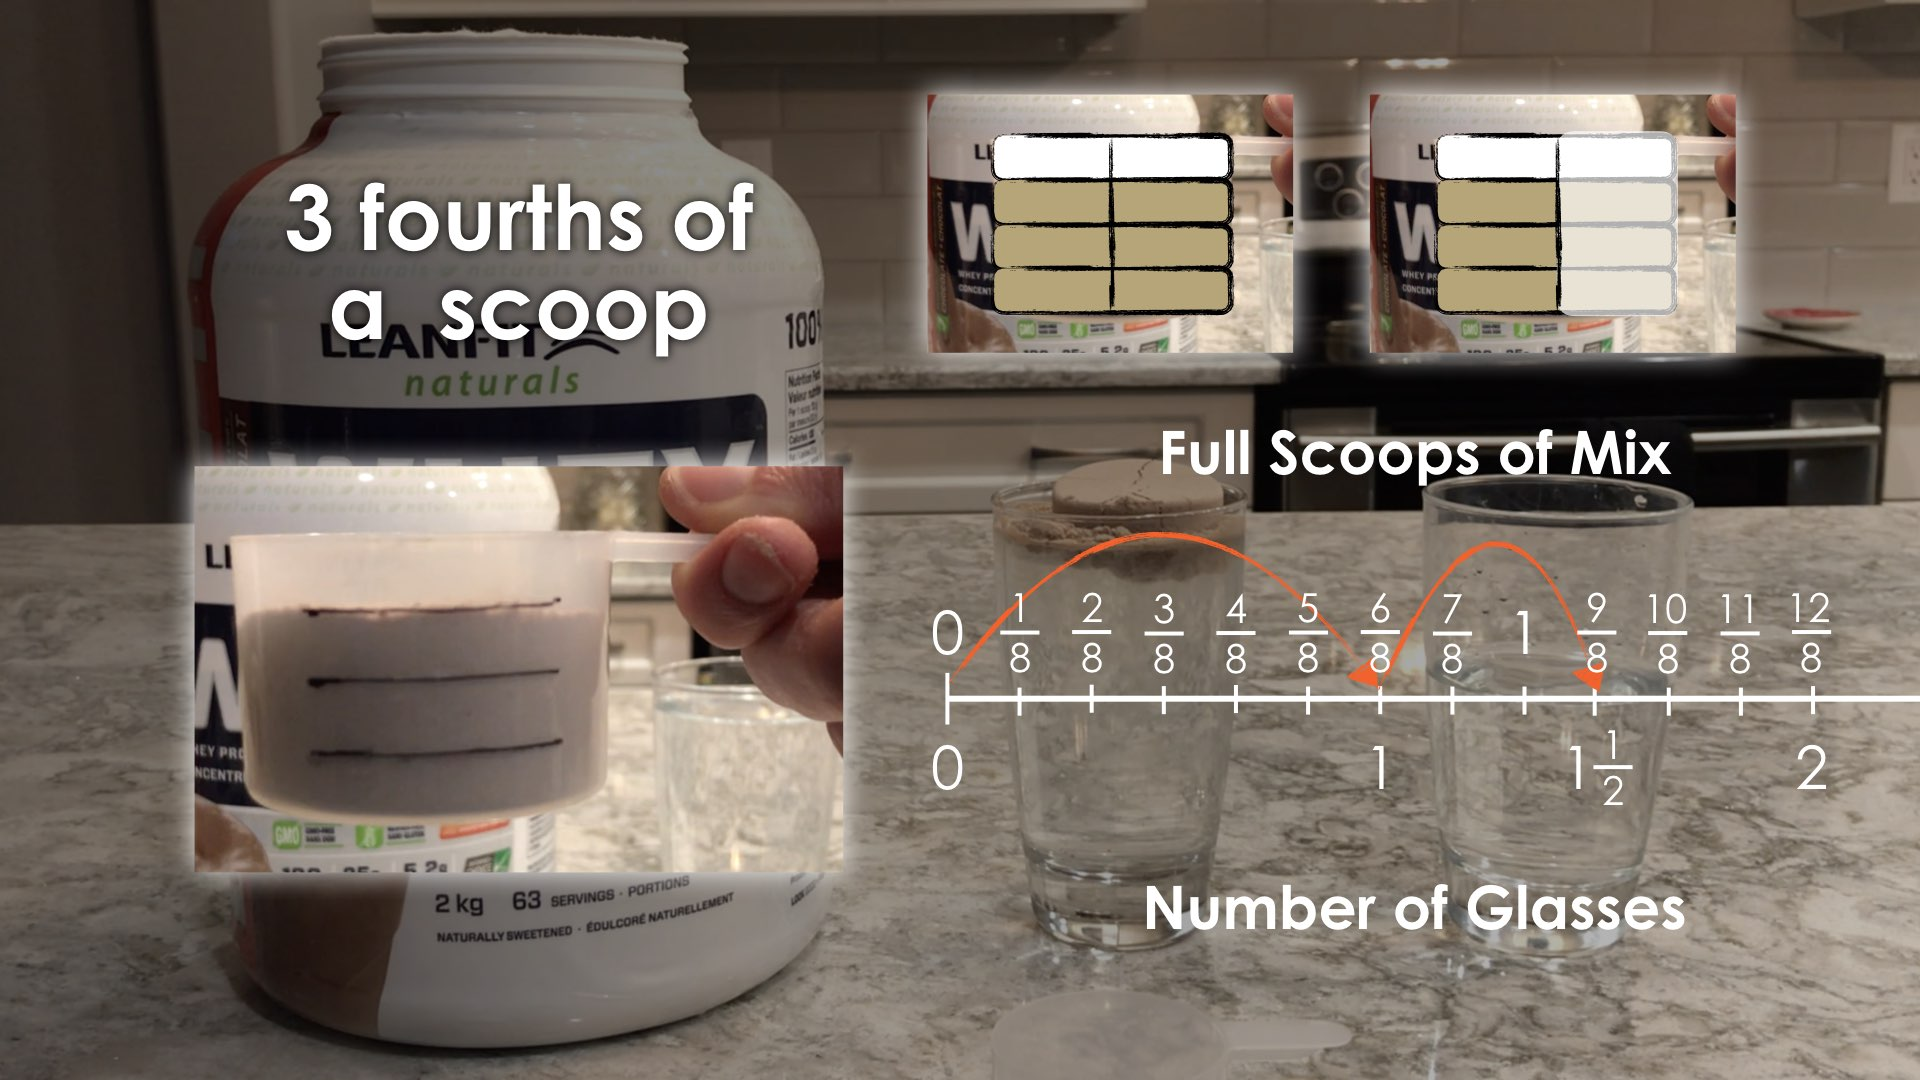 Protein Shakes 3 Act Math Task Extend 1 - Fuel Sense-Making Double Number Line 2